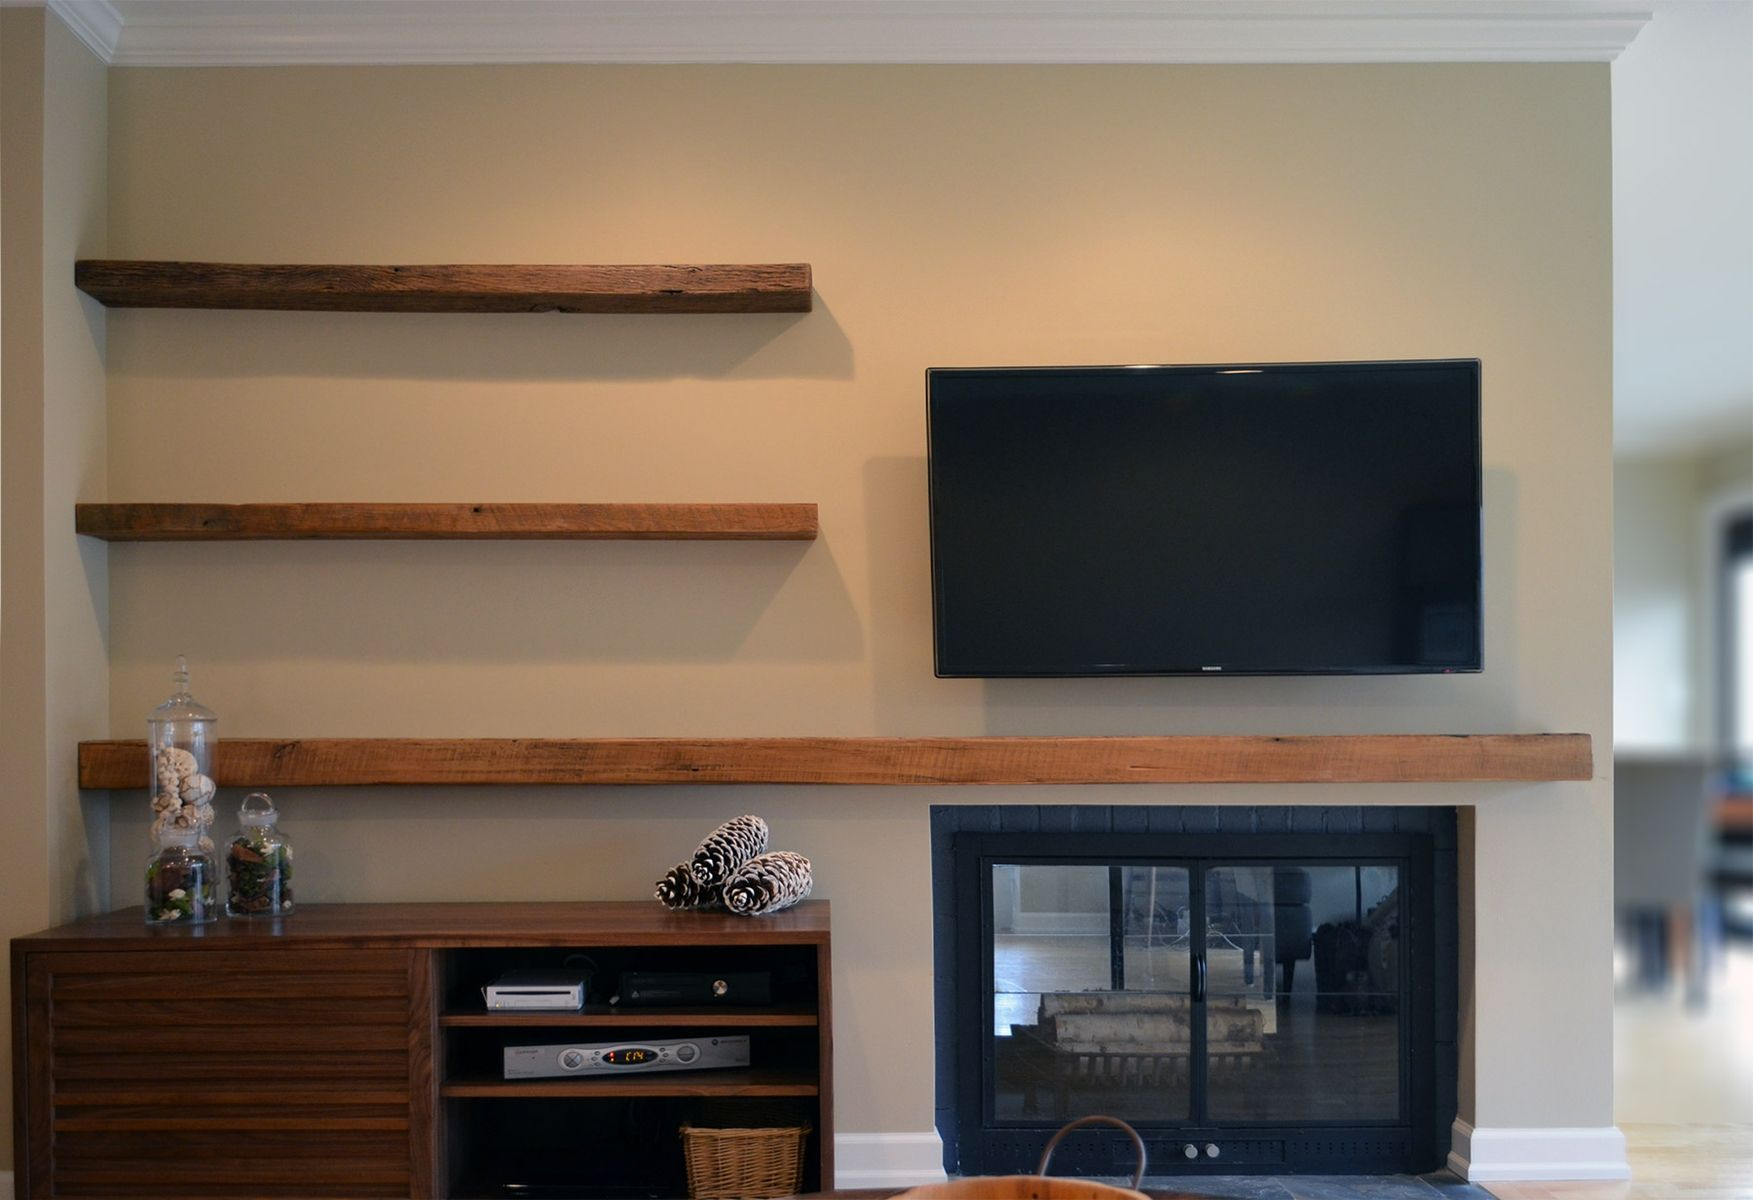 Ikea Kitchen Cabinets Review Hand Made Reclaimed Lumber Floating Shelves By Abodeacious